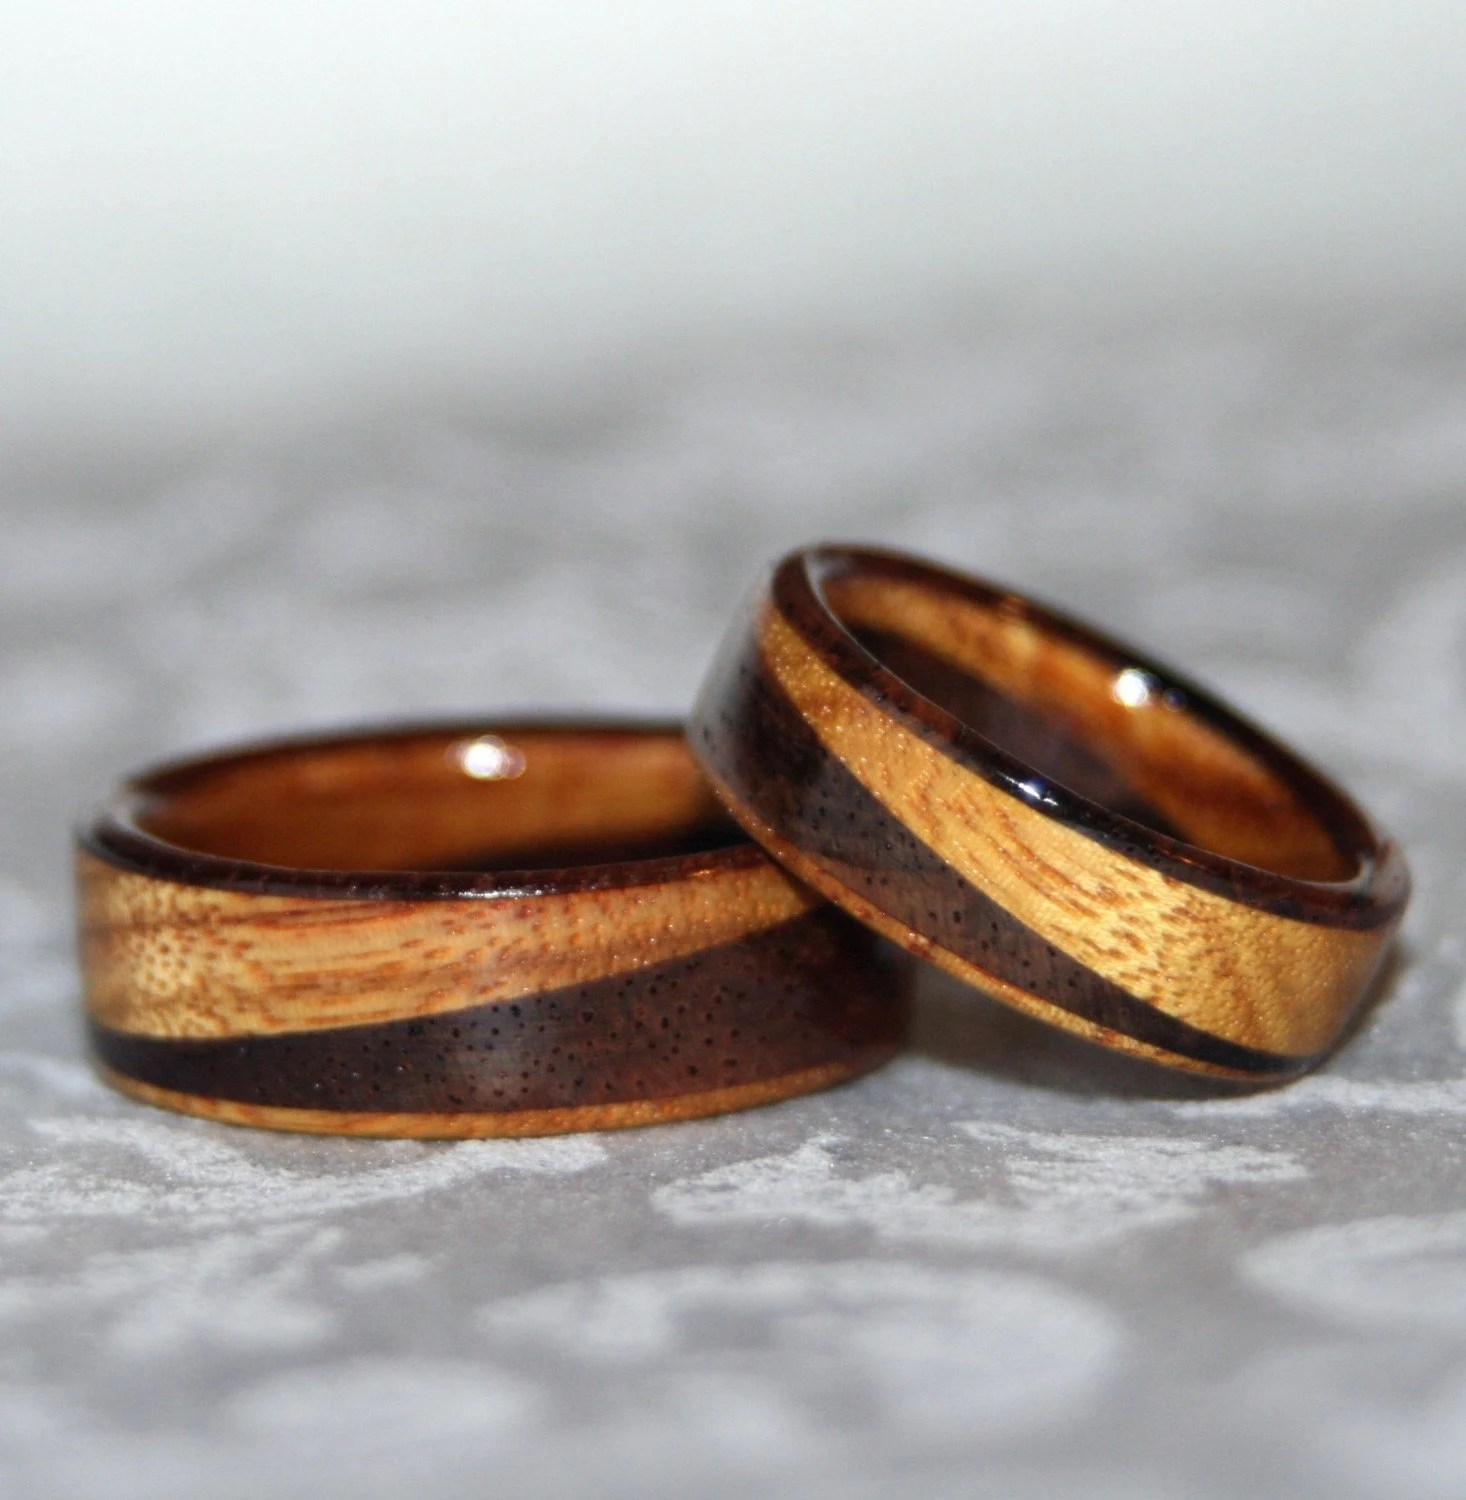 Wooden Rings Or Wedding Bands With Diagonal Design 2 Rings